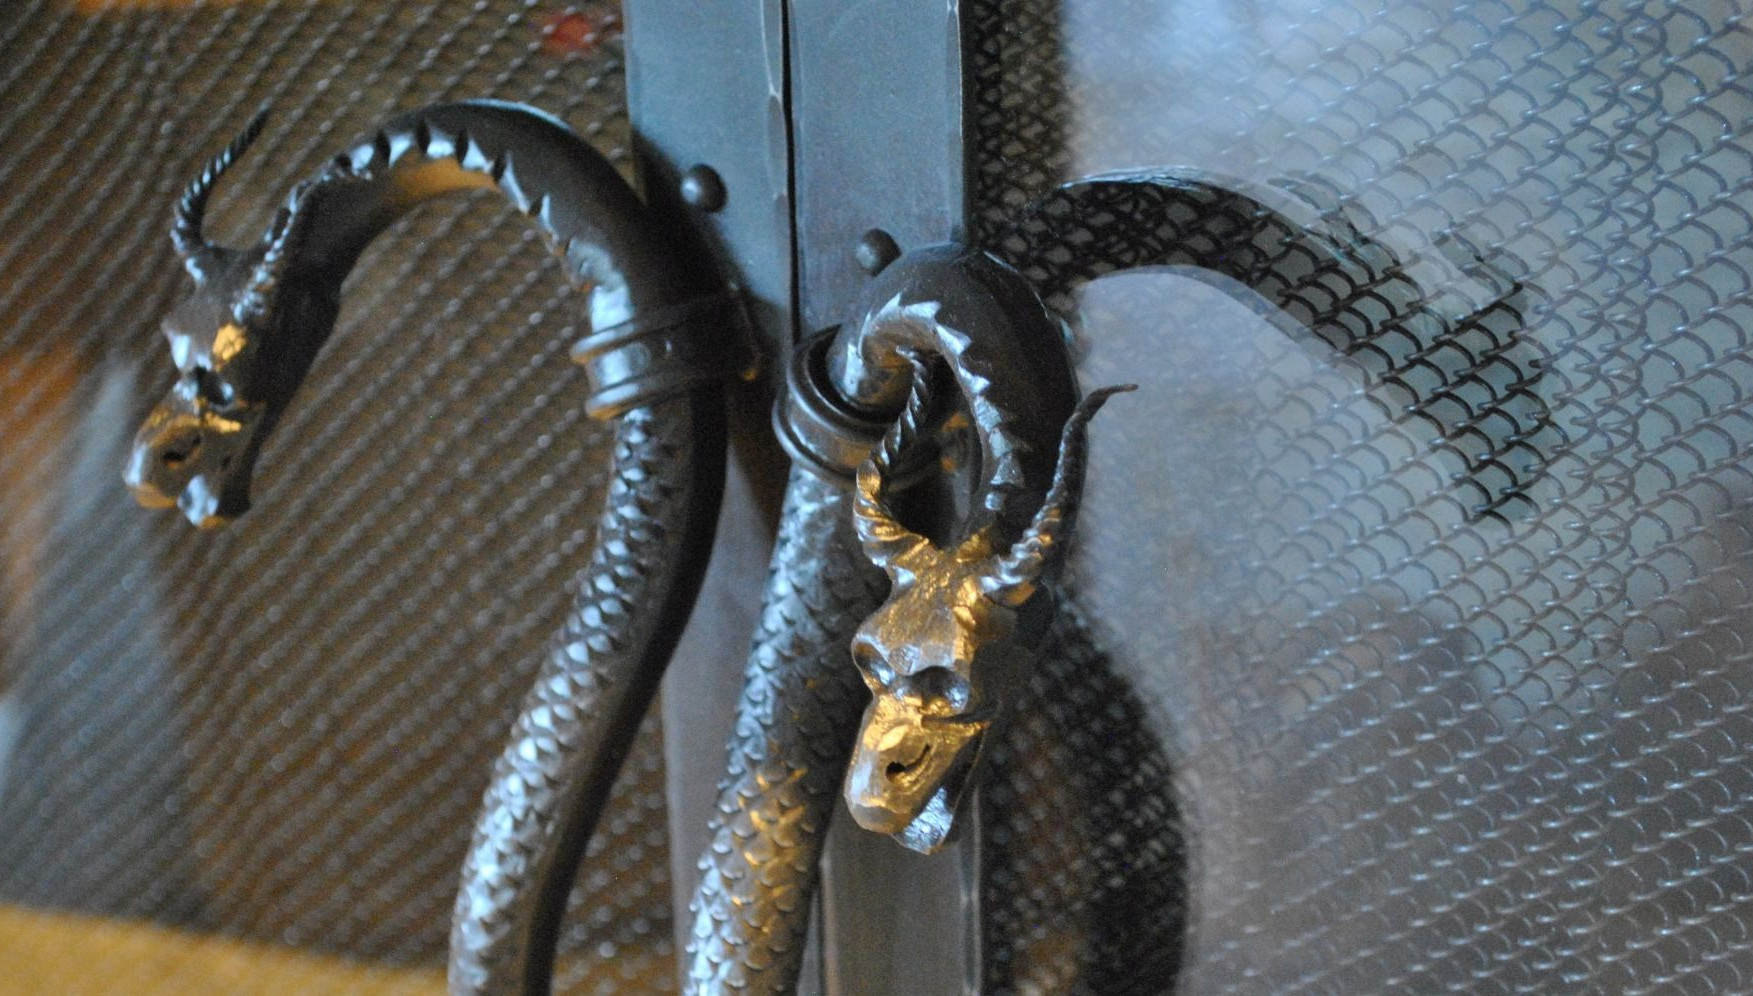 Forged Dragon Handles